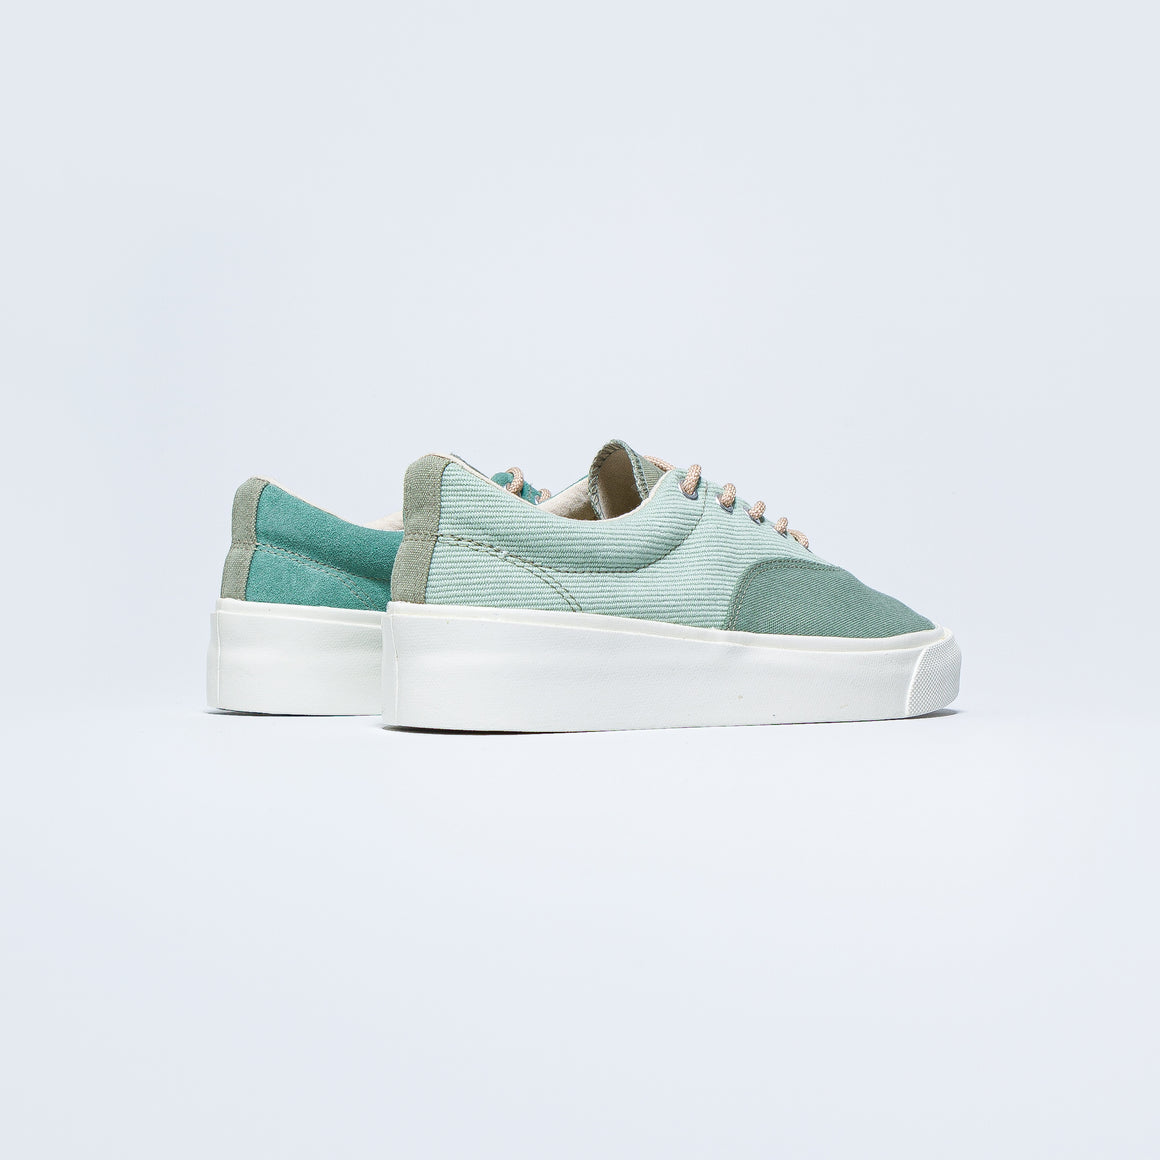 Converse - Skidgrip Low - Oli Green/Malachite Green - Up There